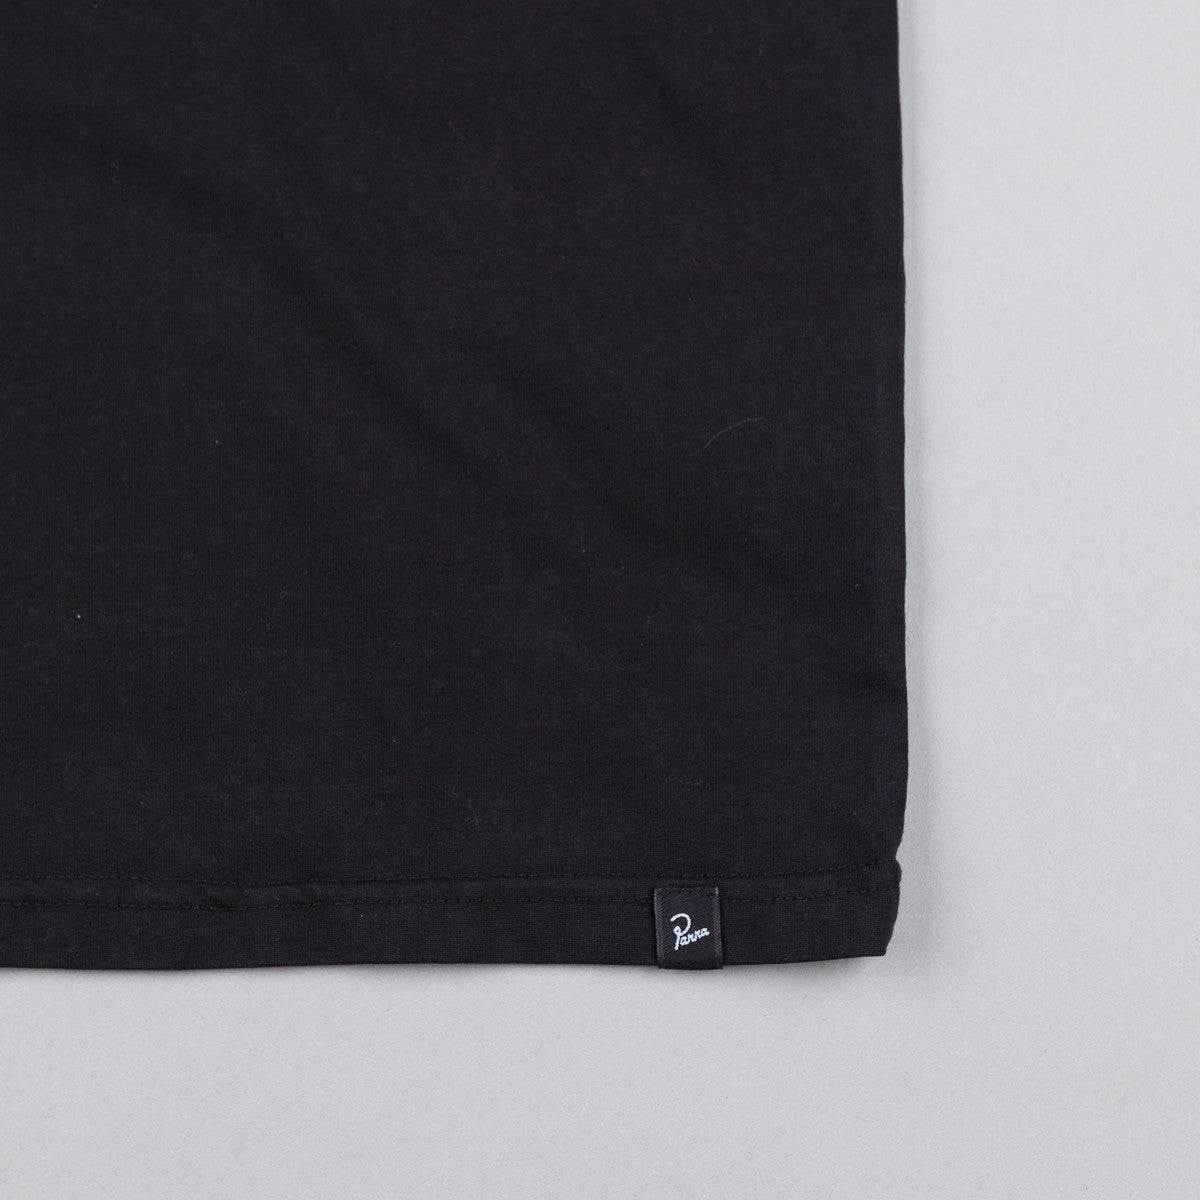 Parra Orange Juice T-Shirt - Black